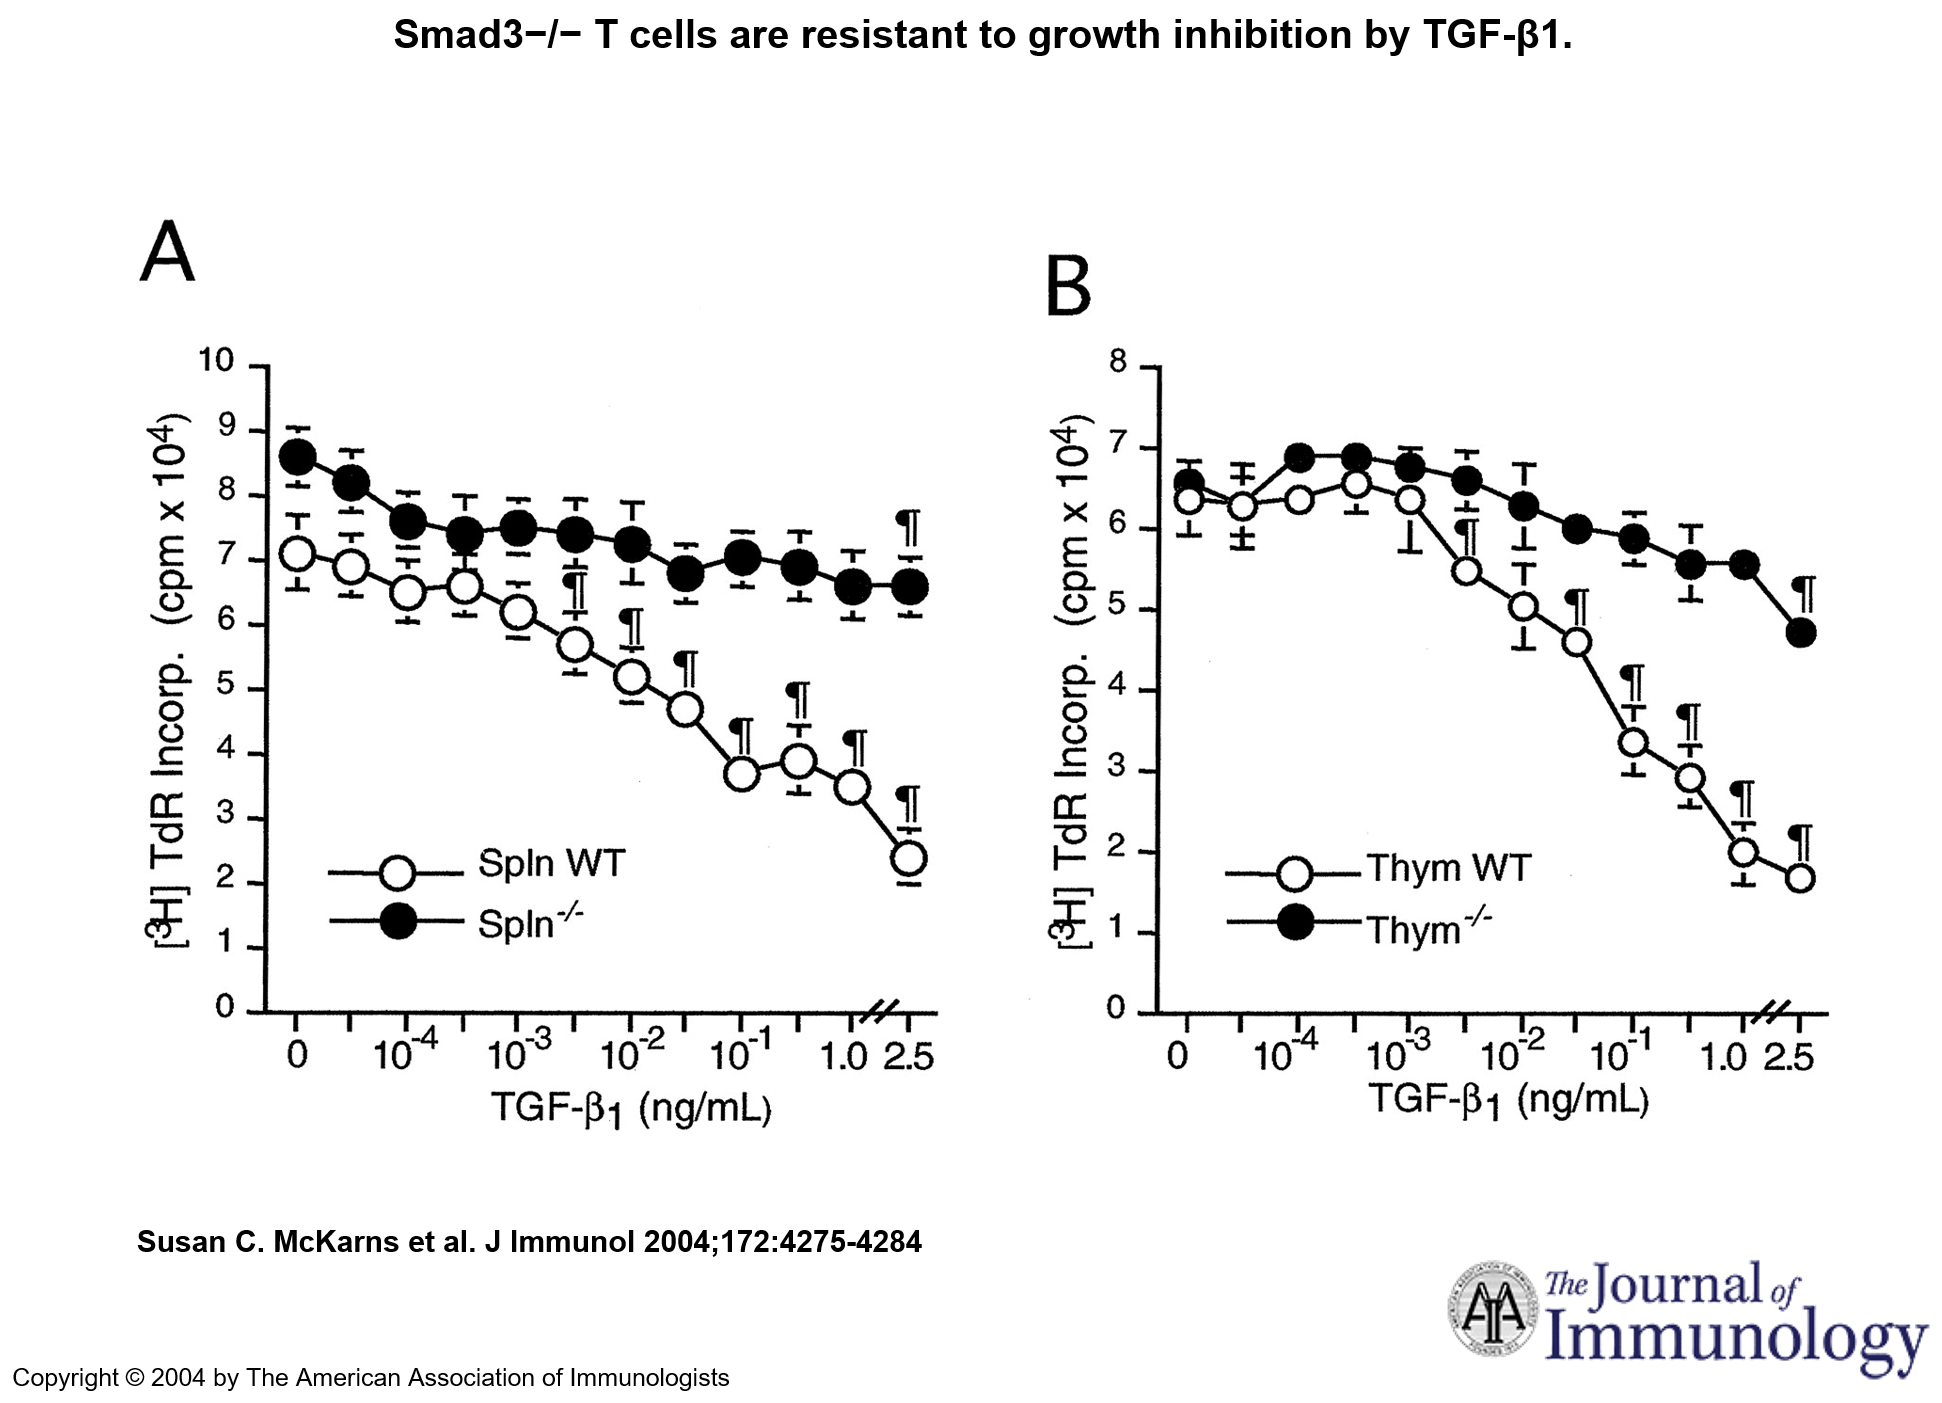 Figure 4. Smad3−/− T cells are resistant to growth inhibition by TGF-β1. Whole splenocytes (A) or thymocytes (B) from WT or Smad3−/− mice were stimulated with anti-CD3 plus anti-CD28 in the presence or absence of TGF-β1 for 72 h, and [3H]TdR was added during the last 18 h of culture. The data are expressed as the mean [3H]TdR incorporation ± SE of three separate experiments for quadruplicate cultures. ¶, Different from vehicle (0 point) at p < 0.05. http://www.jimmunol.org/content/172/7/4275.full